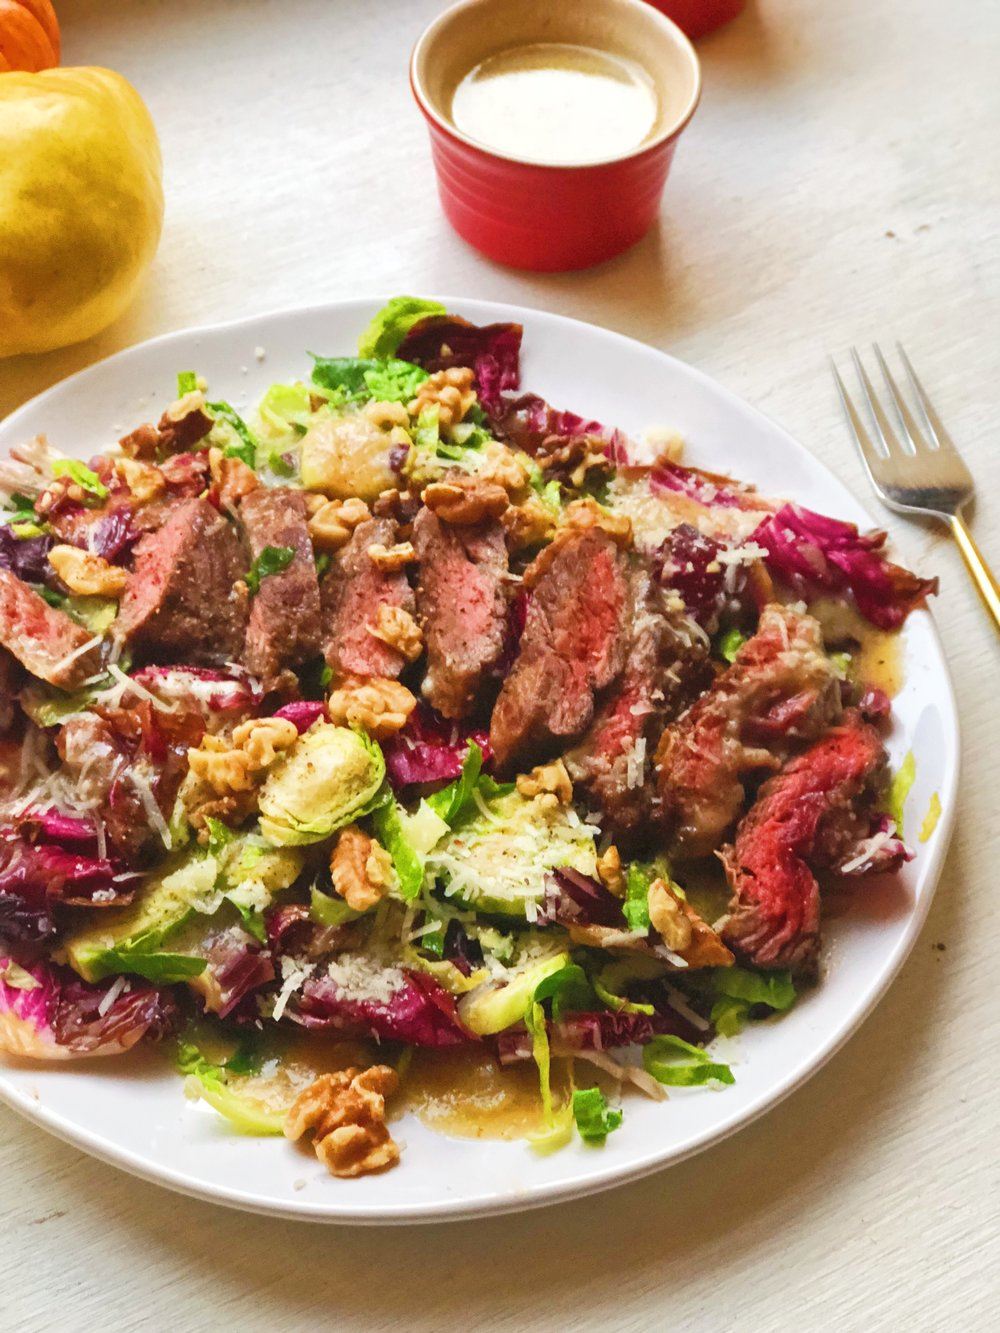 Warm Radicchio and Brussels Sprouts Salad Skirt Steak and Pear Vinaigrette